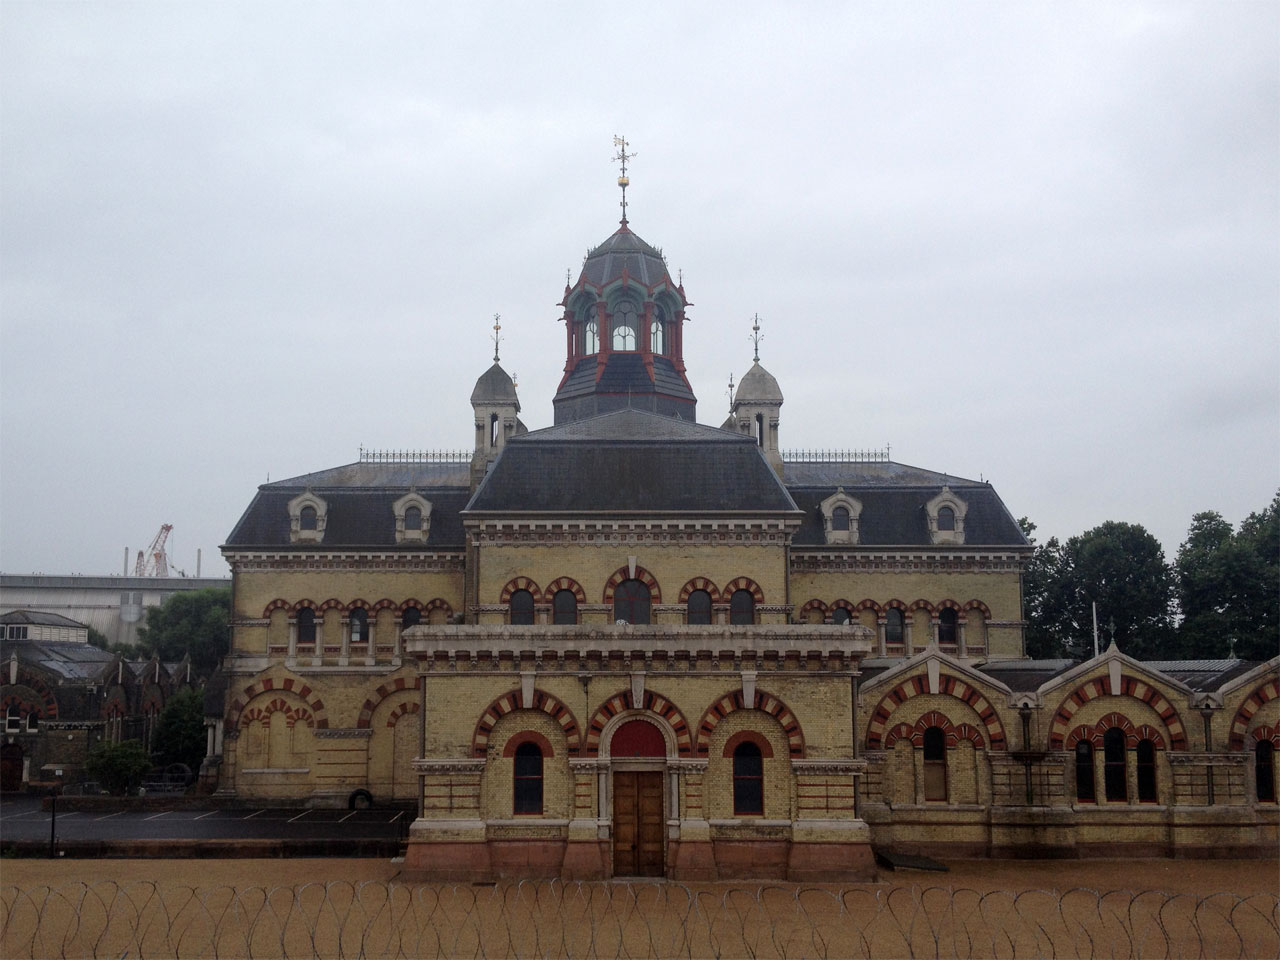 Abbey Mills pumping station, Stratford, London